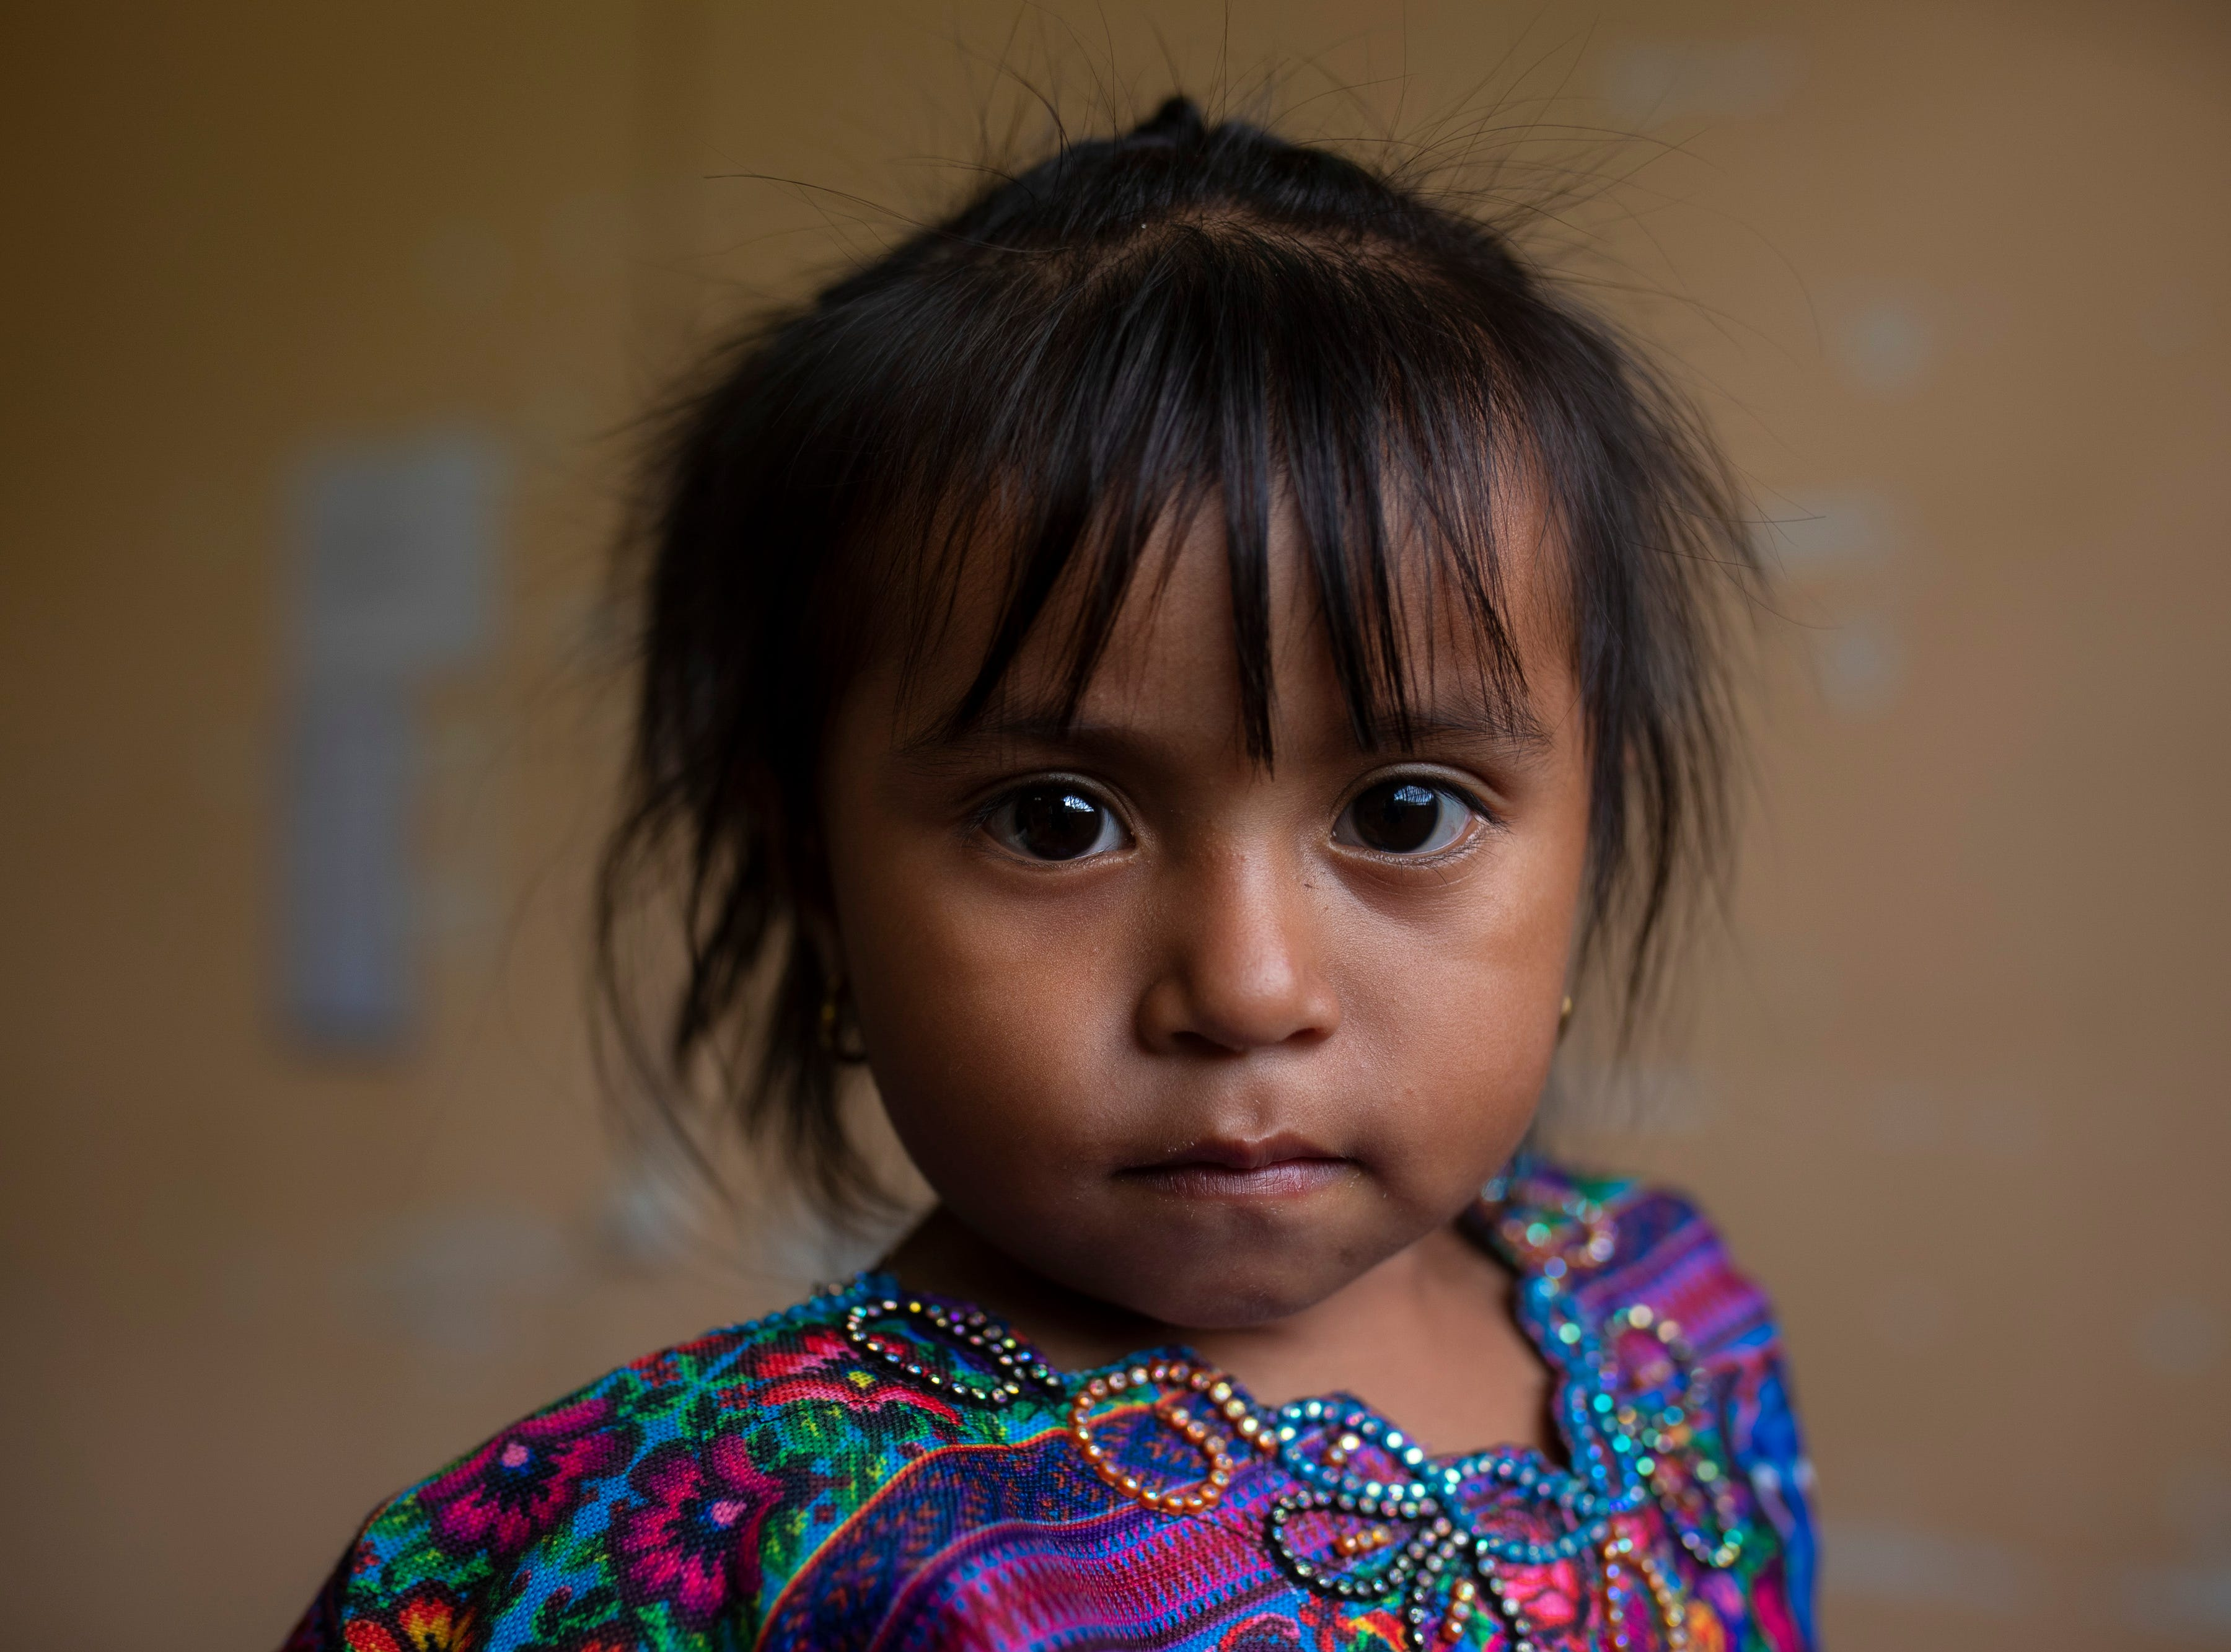 Kristel Cecilia Ordoñez, 3, looks on as she waits to see a COTA physician about a cough. Jan. 20, 2019